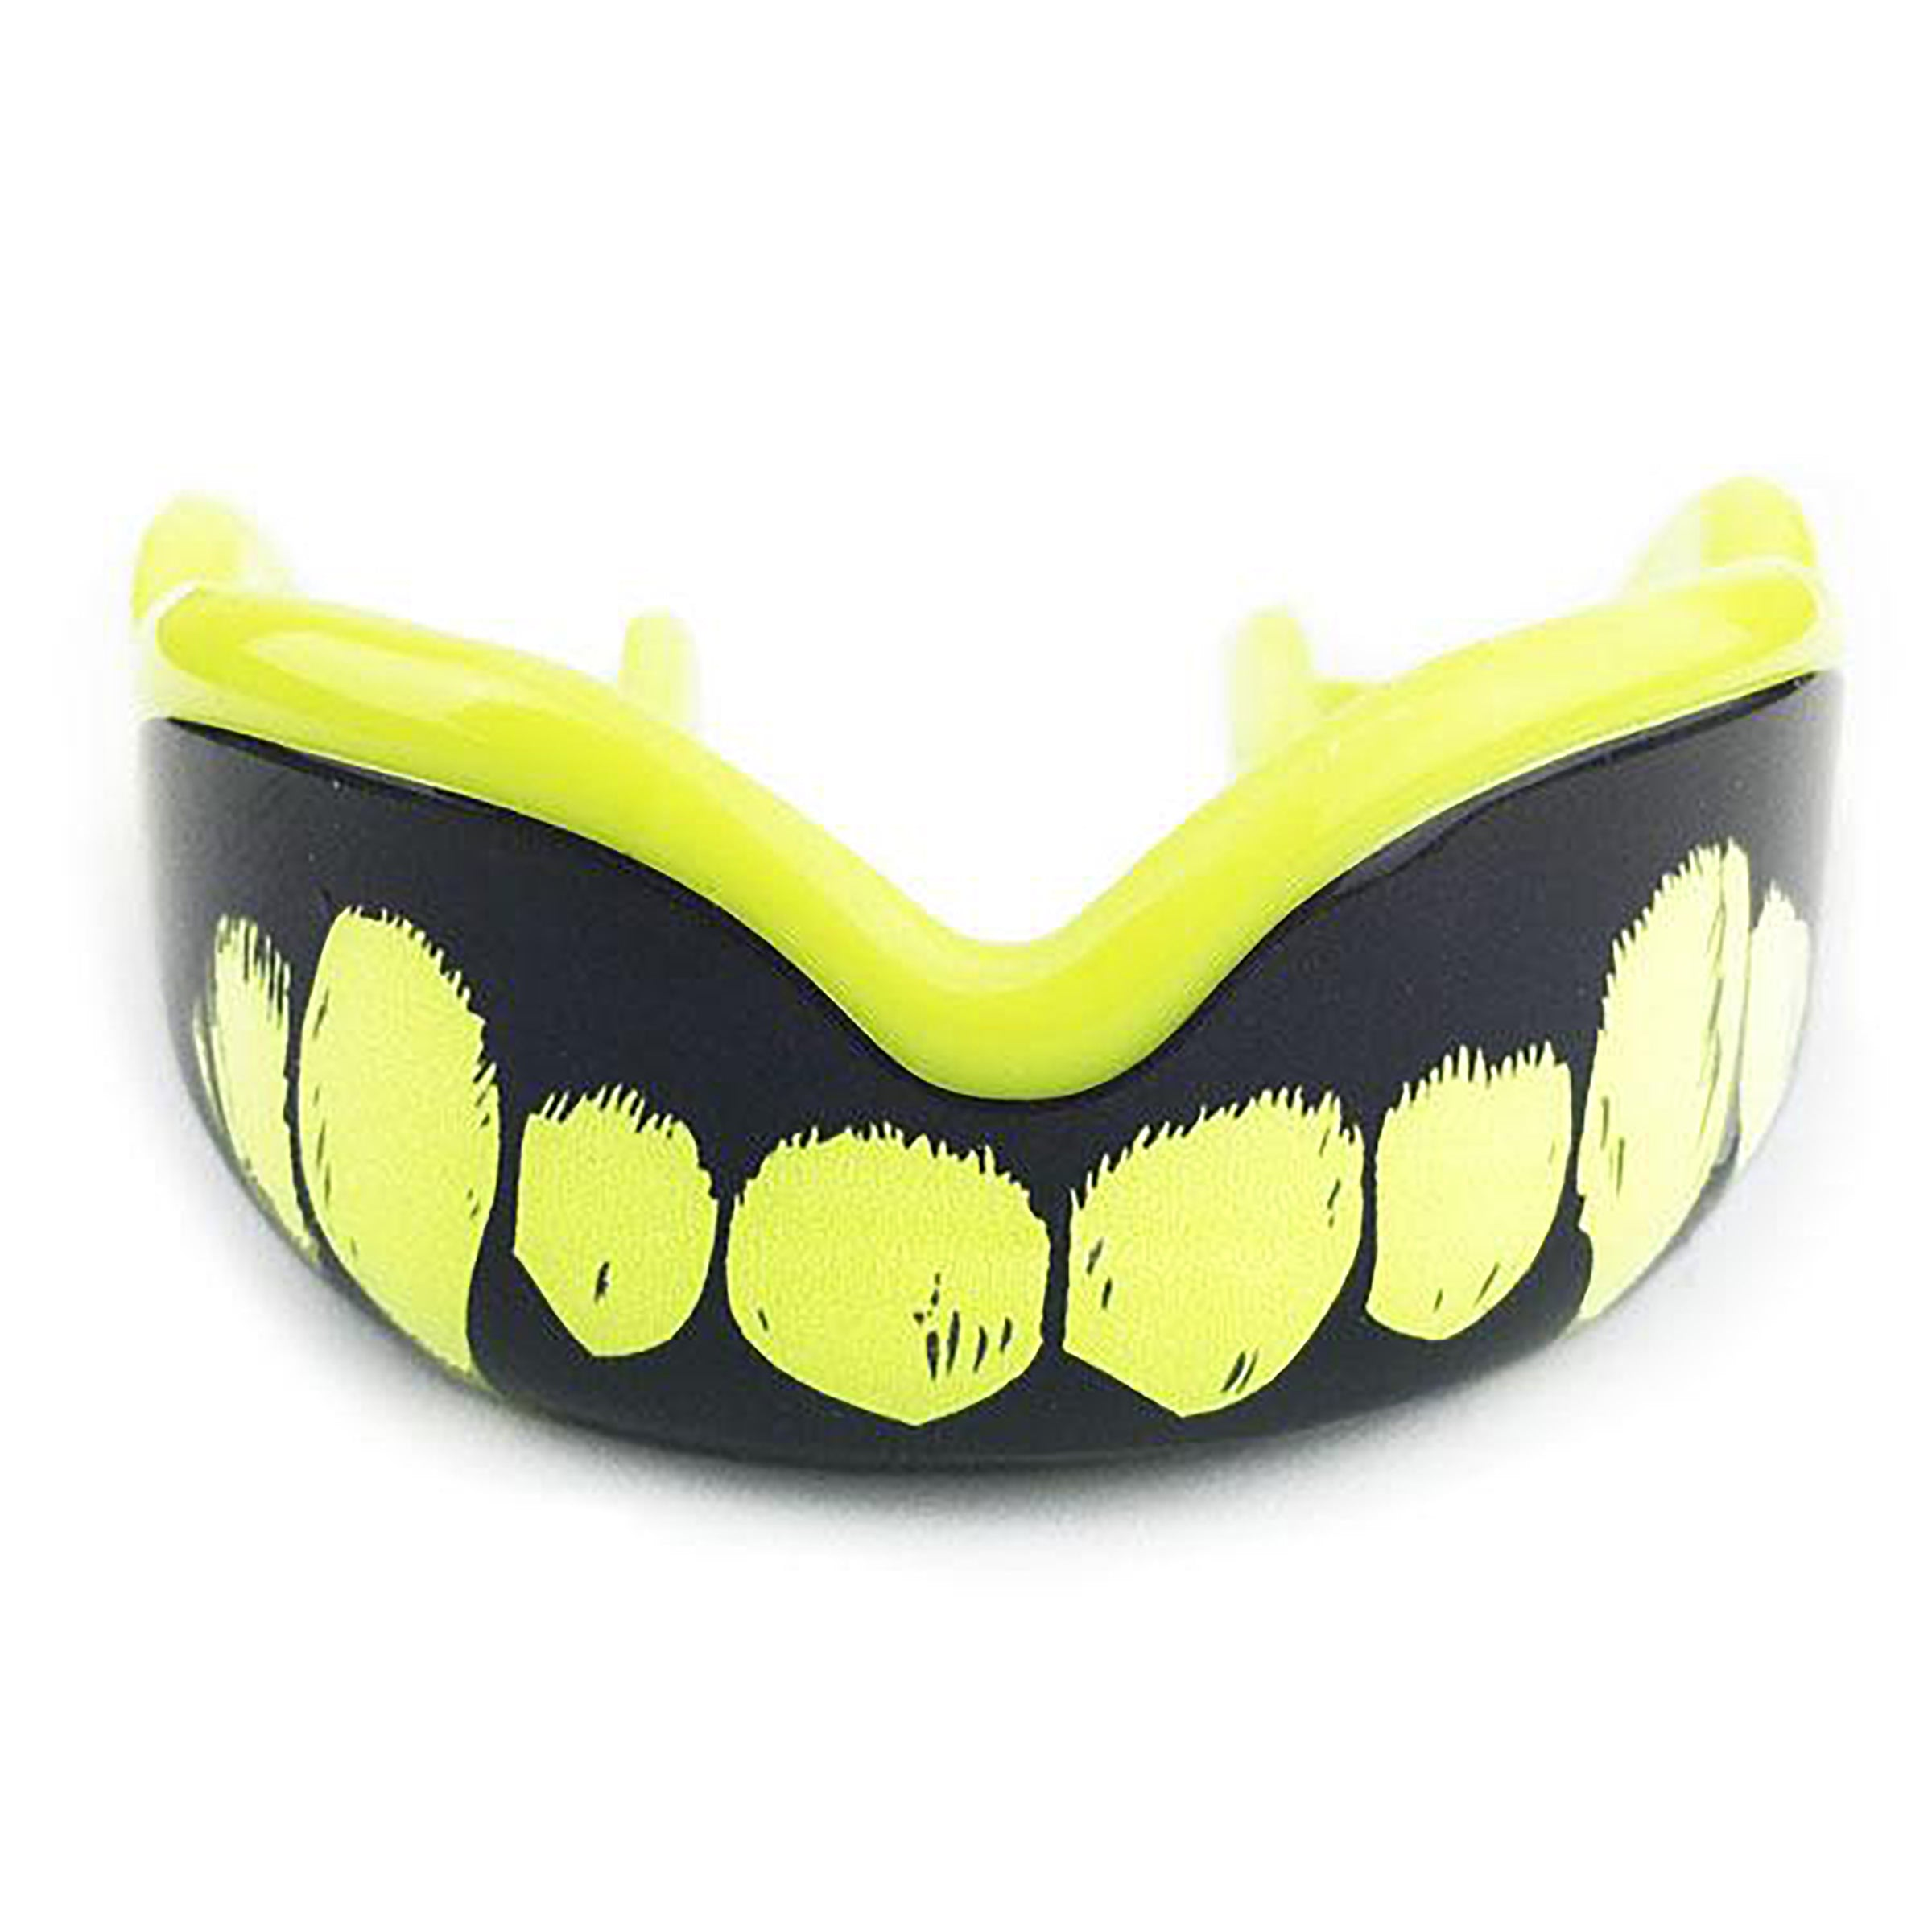 Image of Damage Control Fangrene Extreme Impact Mouthguard